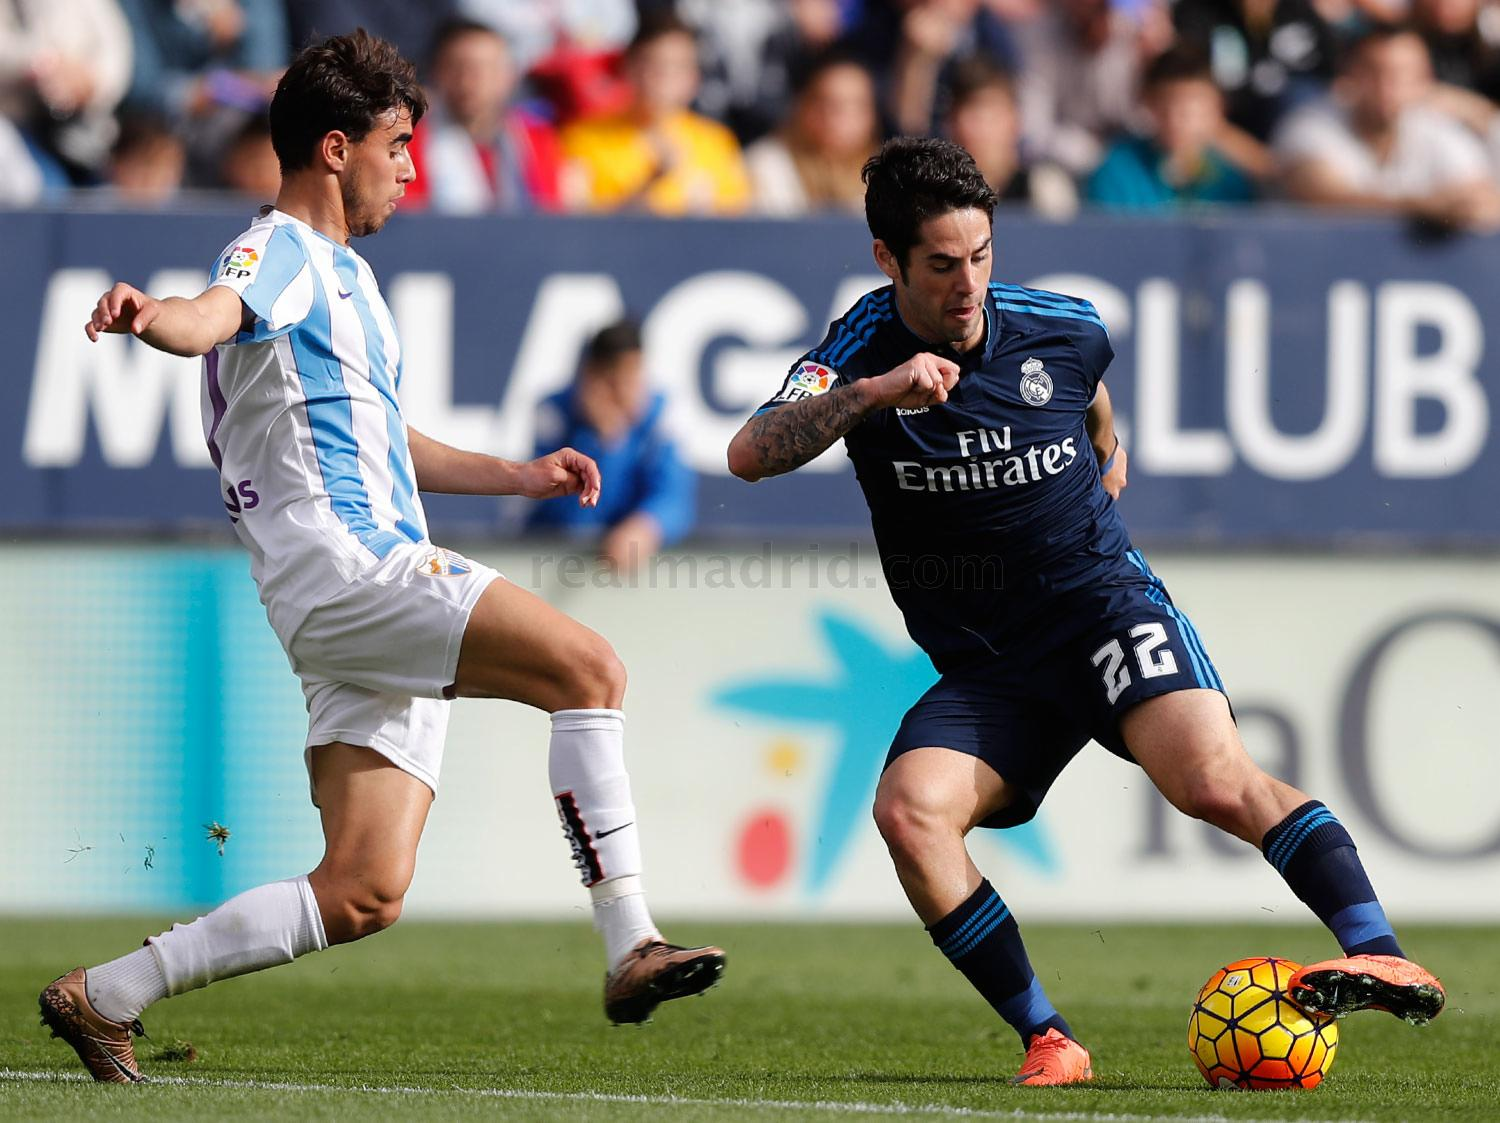 Real Madrid - Málaga - Real Madrid - 21-02-2016